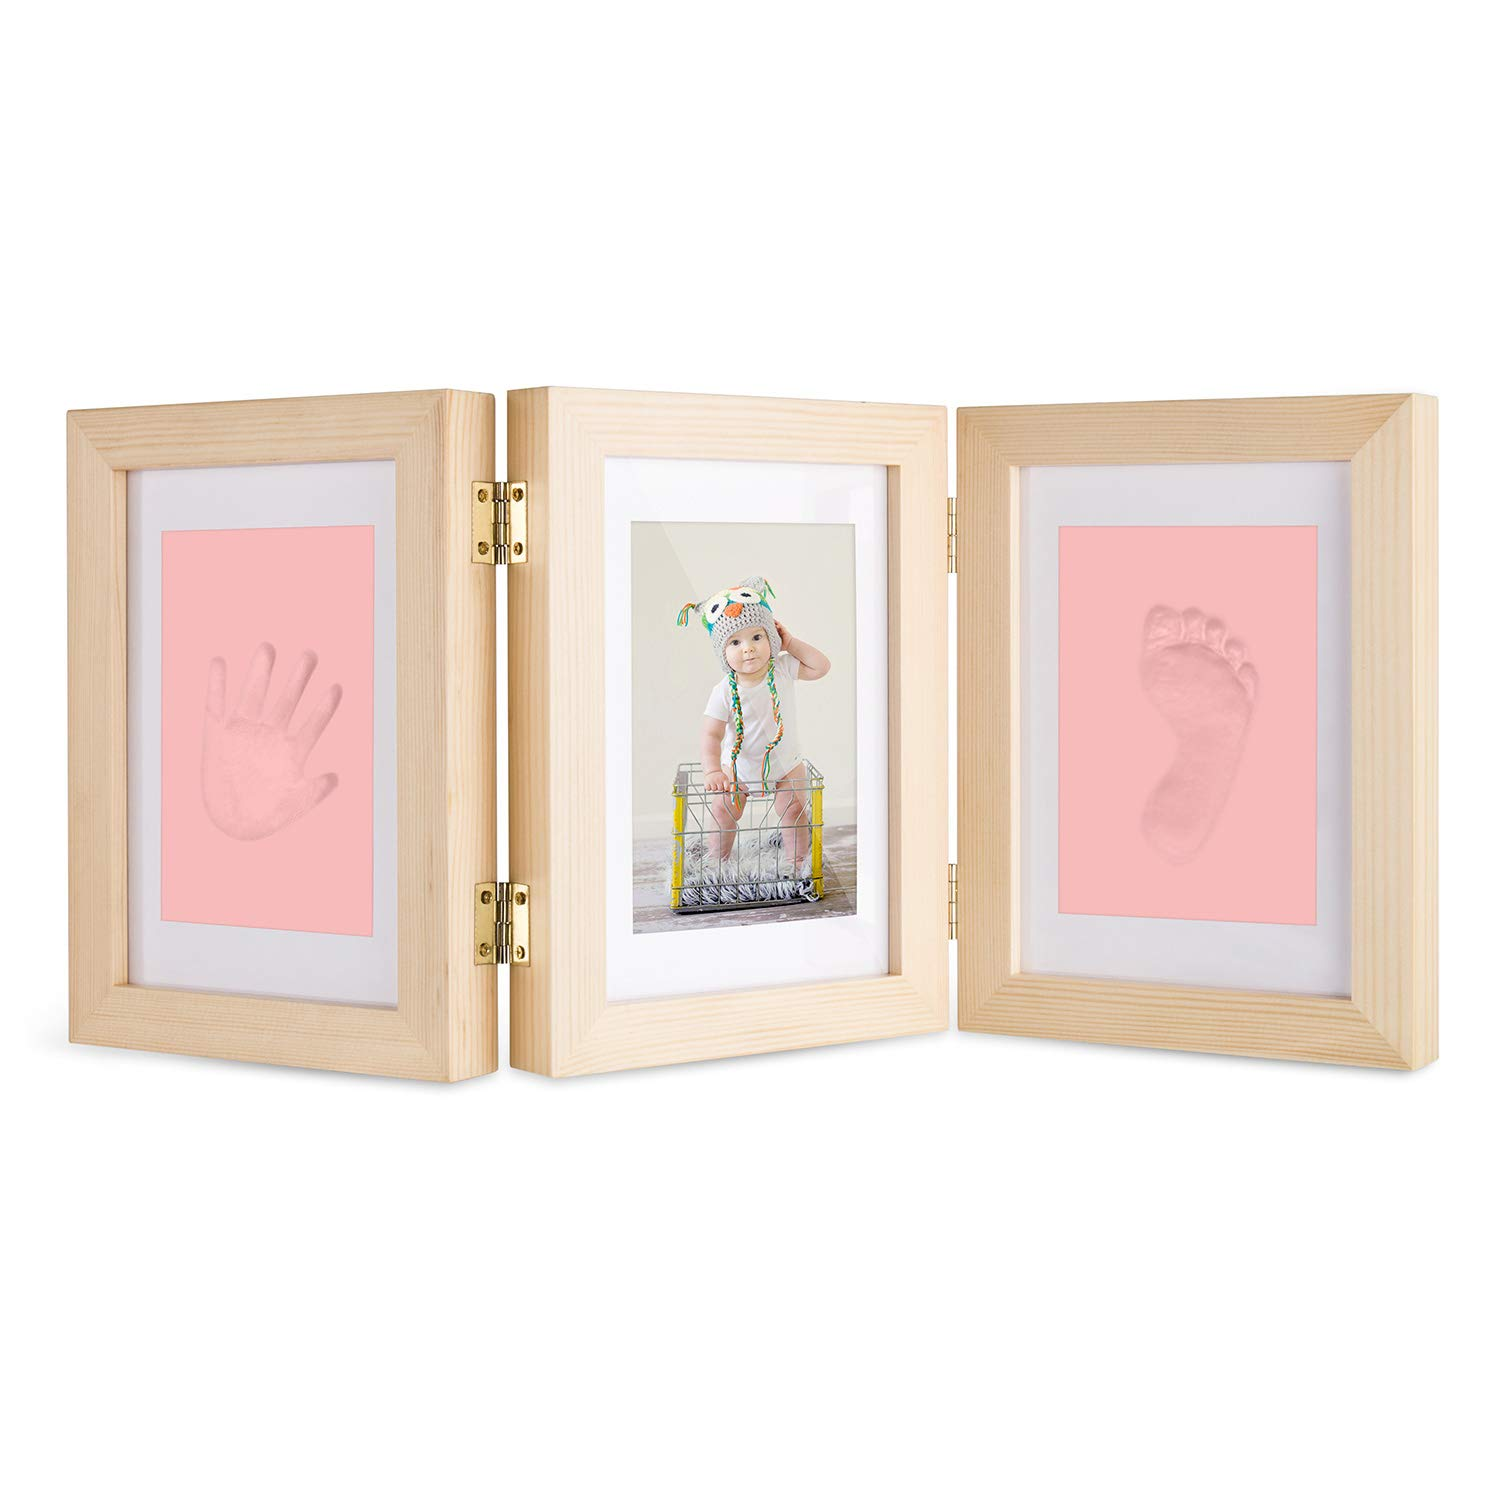 Baby Hand and Footprint Maker, Solid Wood Picture Frame Keepsake Kit with Clay Shower Gifts for Newborn Girls and Boys, Pet Paw Print Ferirama